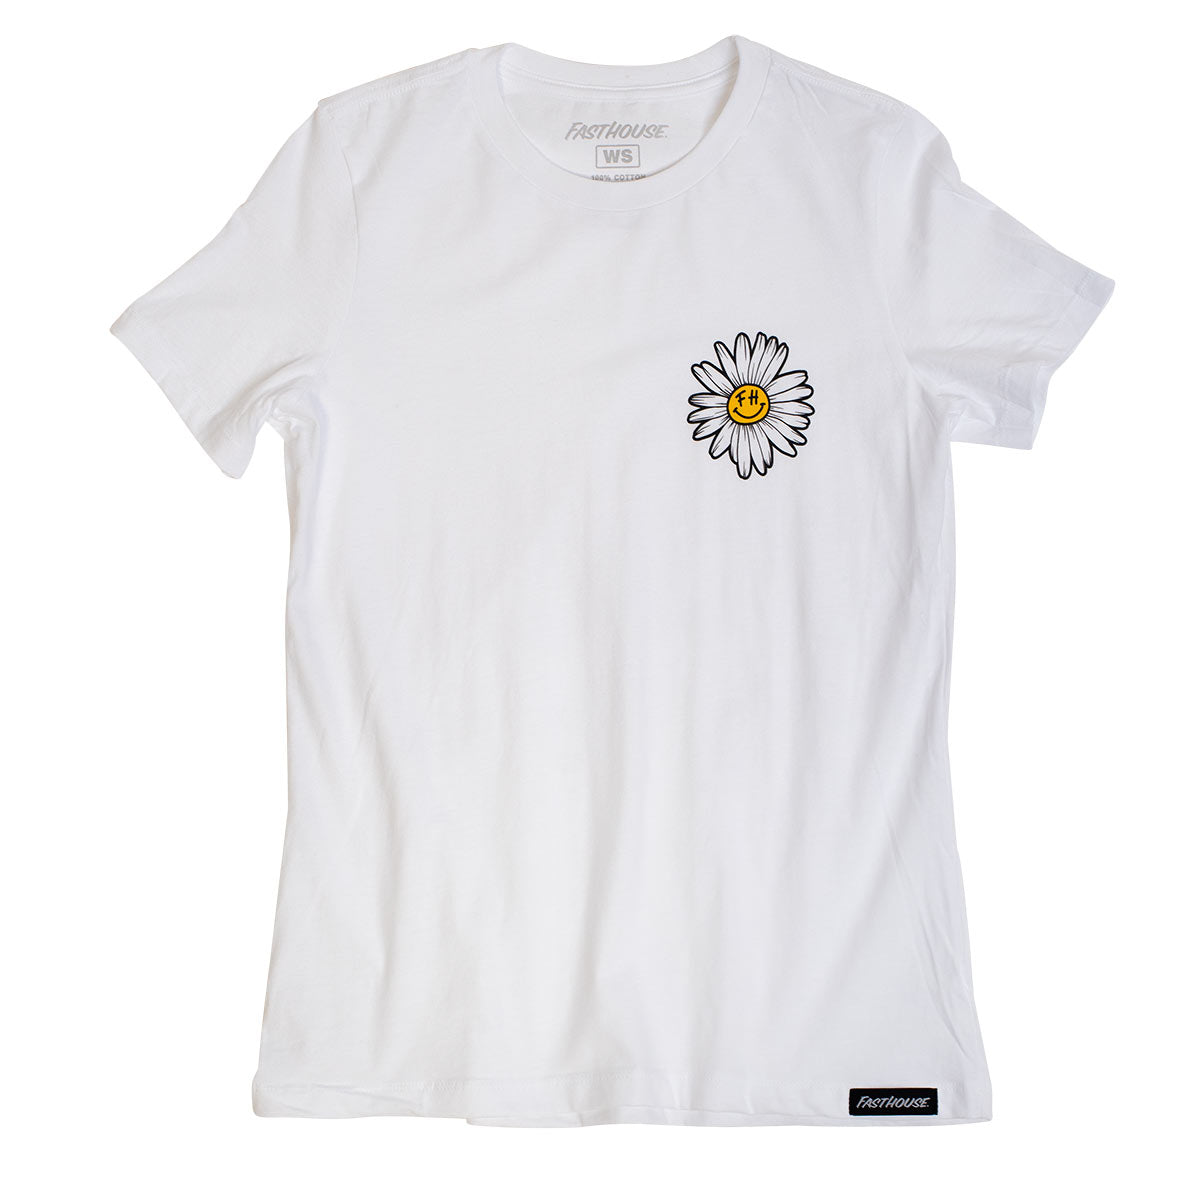 All Smiles Women's Tee - White